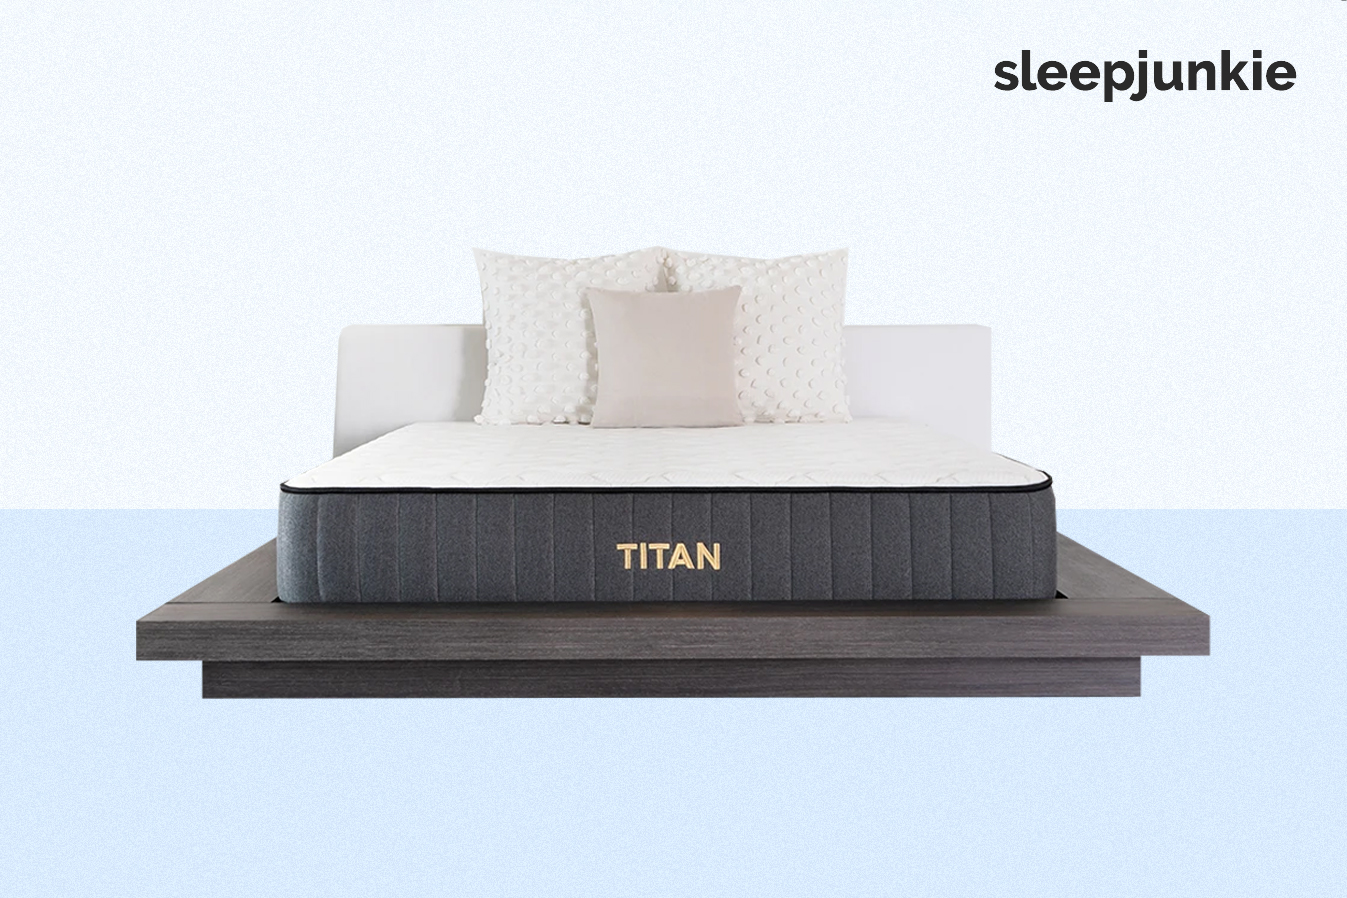 titan mattress for plus size sleepers, best mattress for plus size people